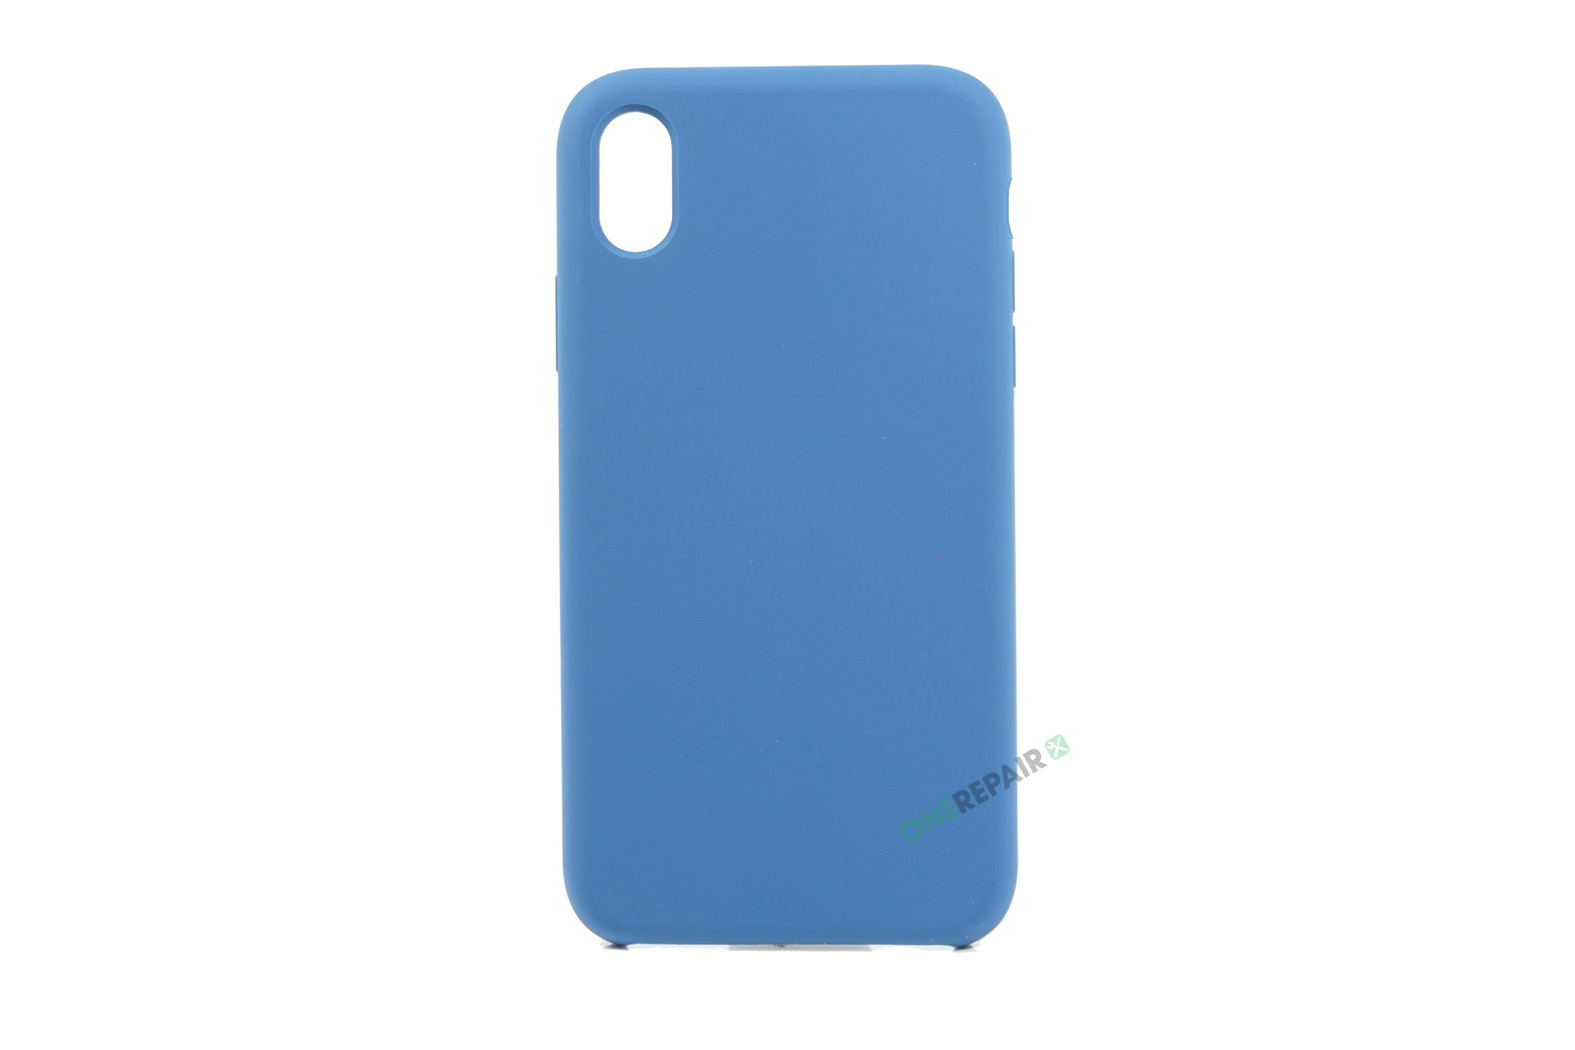 352077_iPhone_XR_Silikonecover_Cover_Blaa_Pastel_Navy_Blue_OneRepair_00001